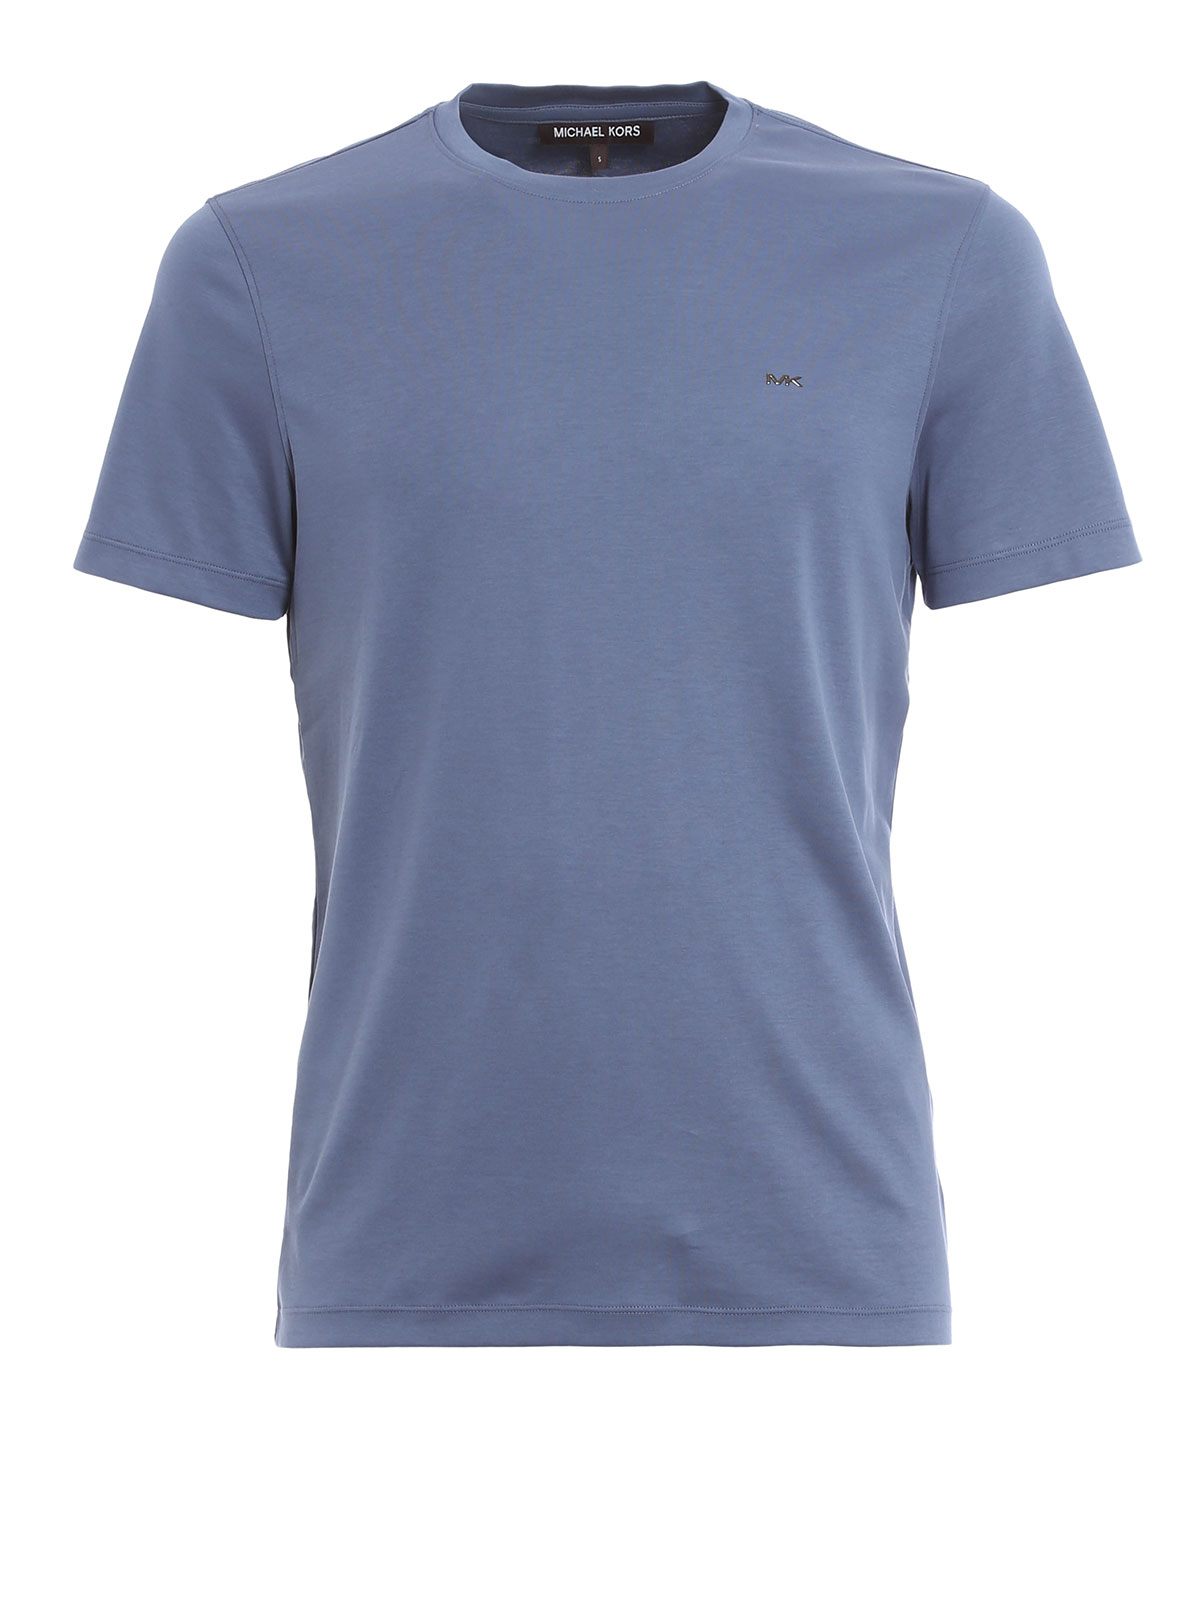 jersey cotton t shirt by michael kors t shirts shop